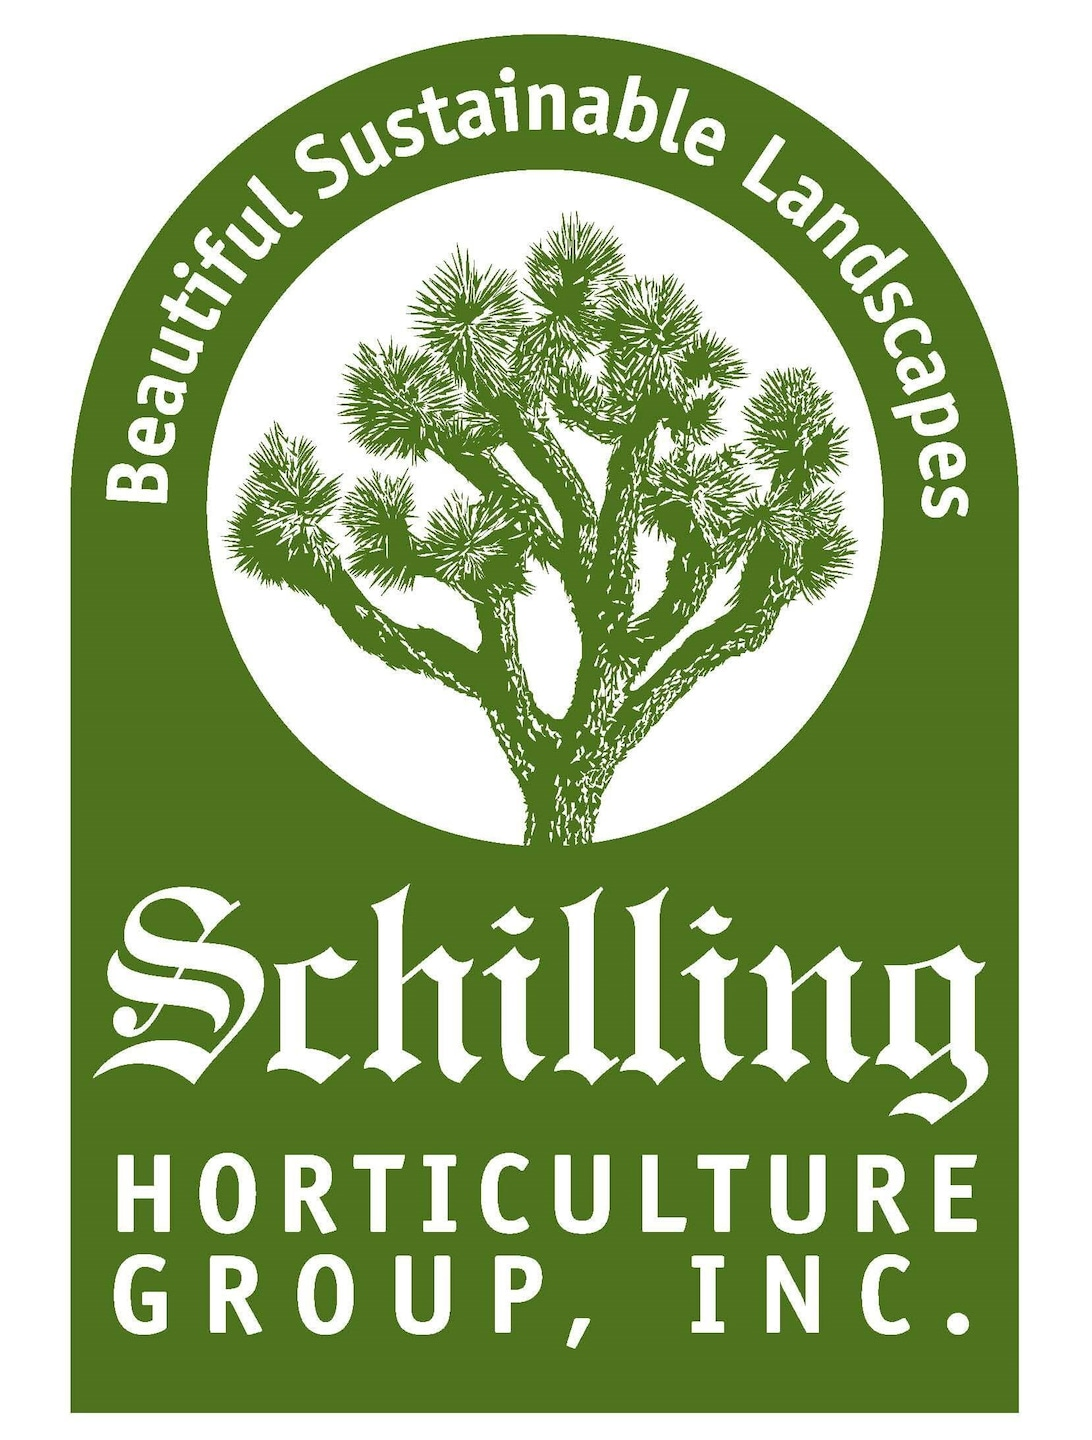 Schilling Horticulture Group Inc